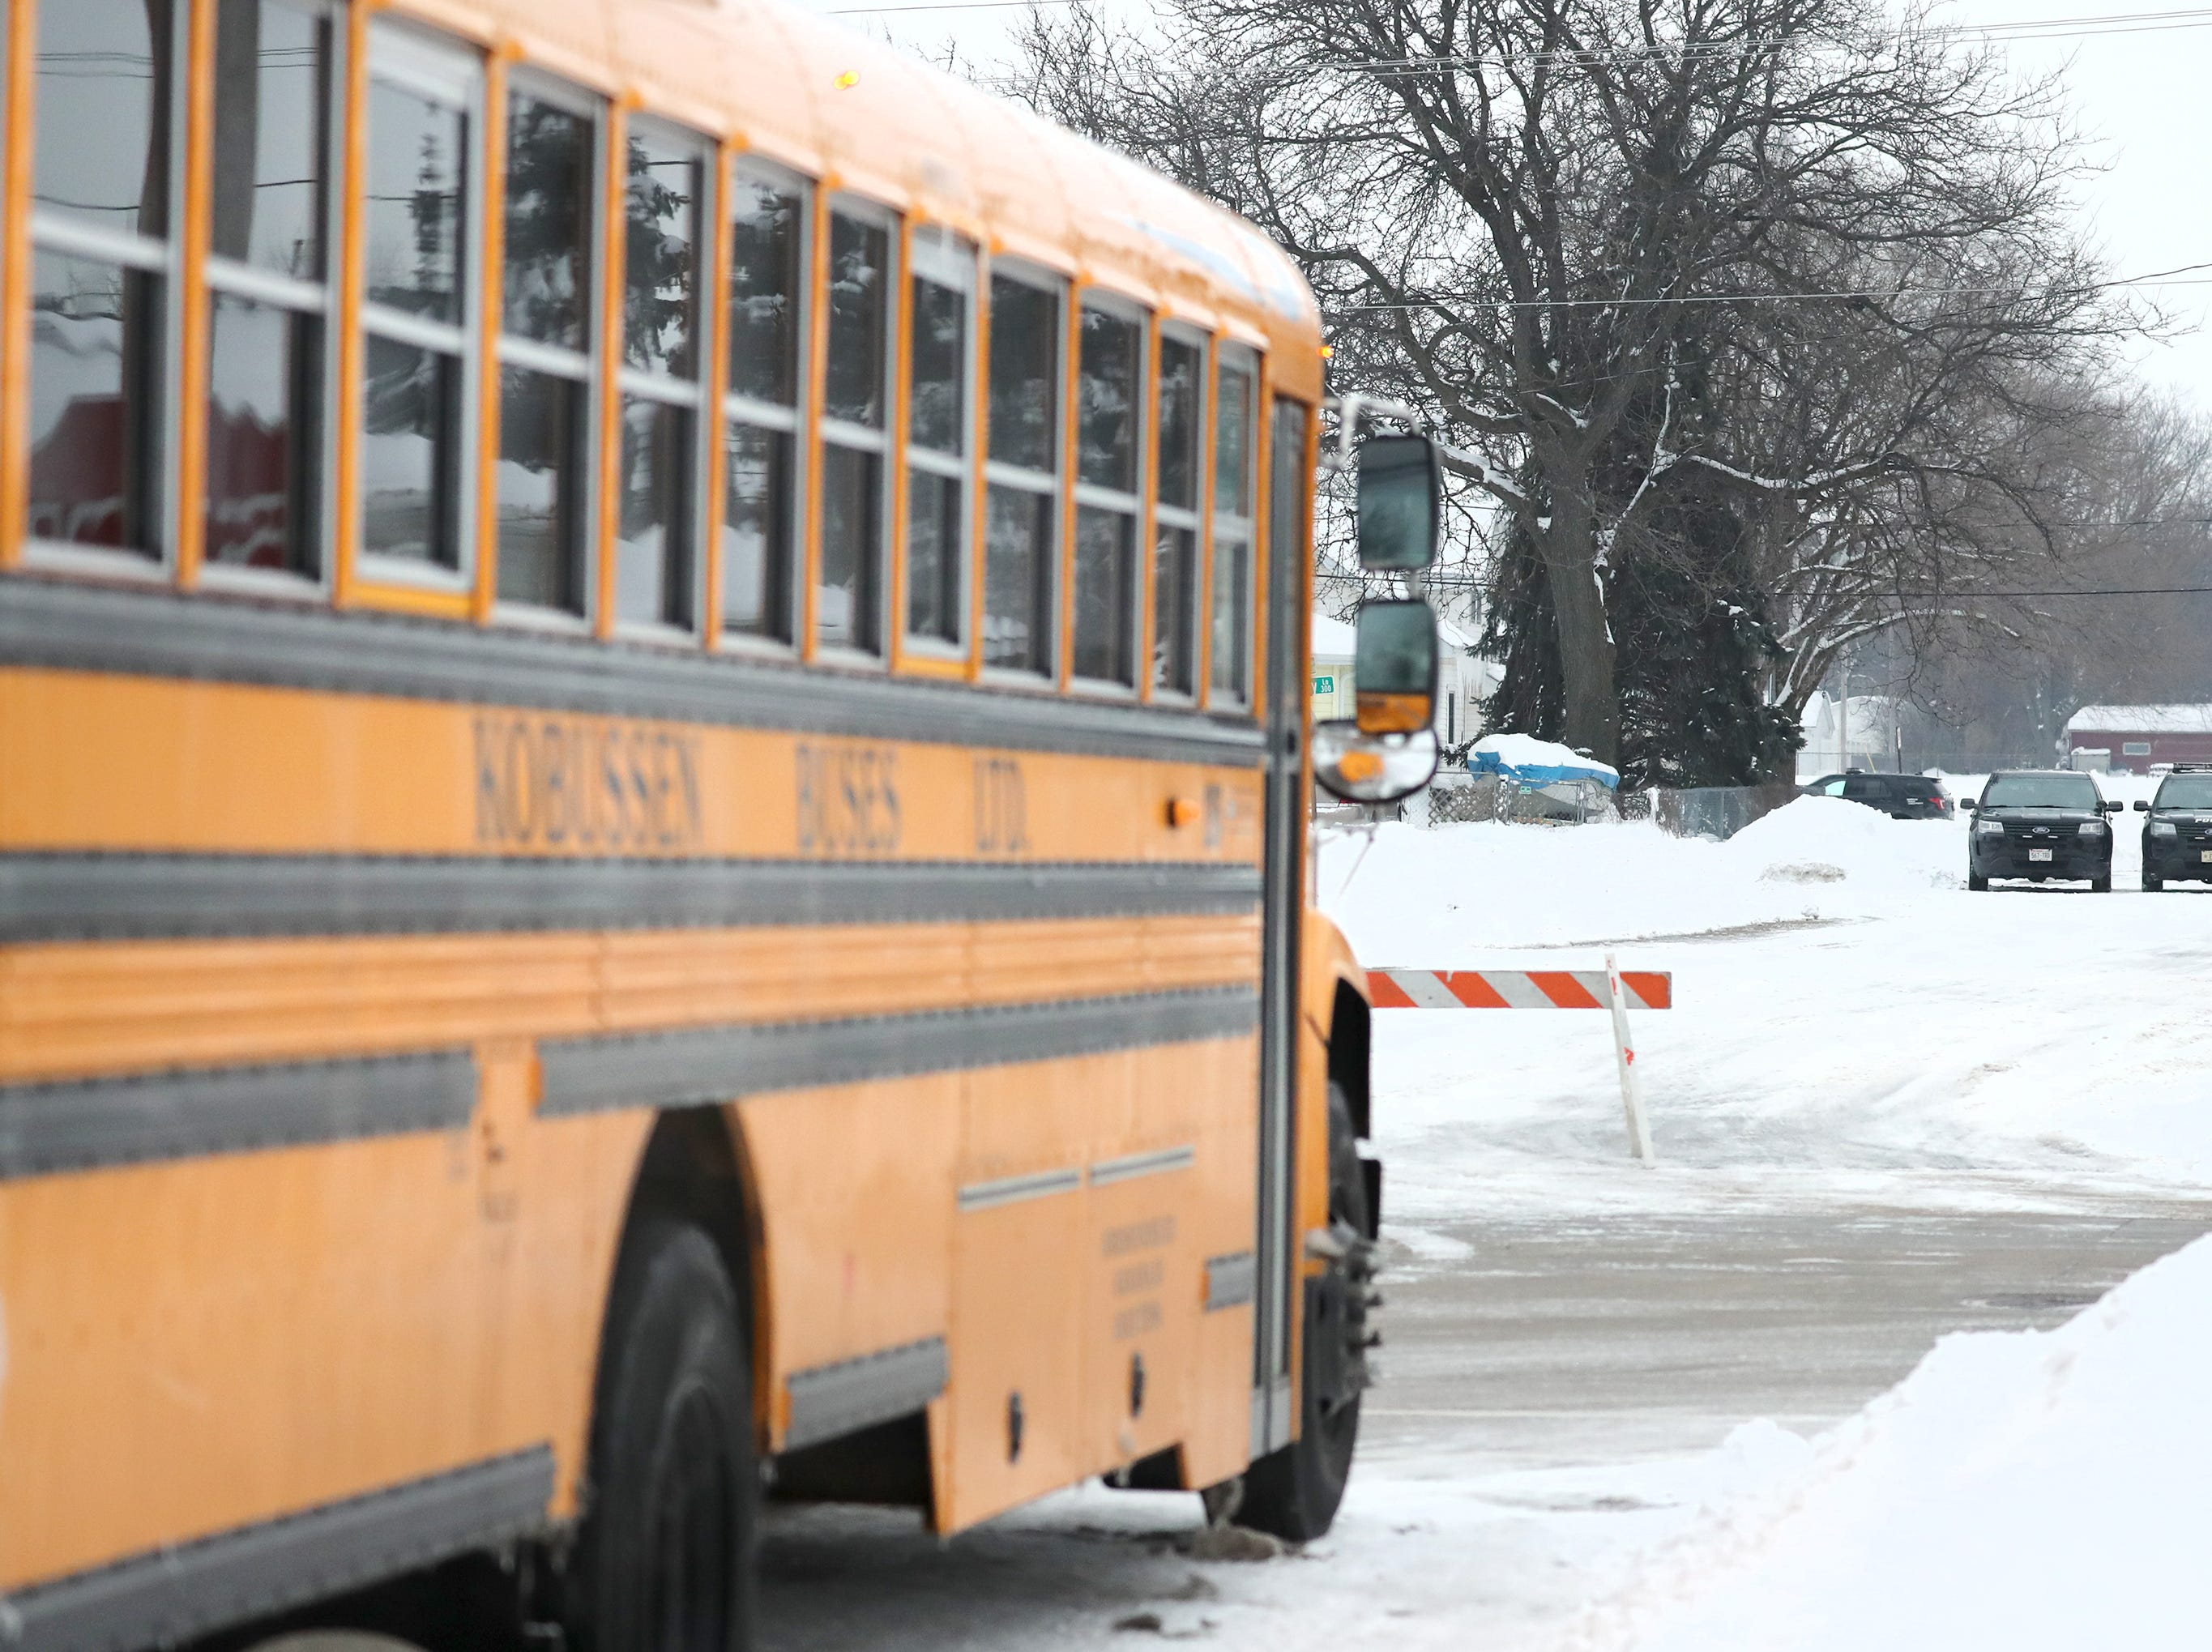 A Kobussen school bus is parked near the scene of an active police incident involving an armed man who barricaded himself inside a home on the 400 block of Quarry Lane Thursday, Feb. 14, 2019, in Neenah, Wis. Stuart Zuehls, a police officer and spokesman for the Neenah Police Department, said the department used a Kobussen bus to evacuate any nearby residents that wanted to be moved.Danny Damiani/USA TODAY NETWORK-Wisconsin